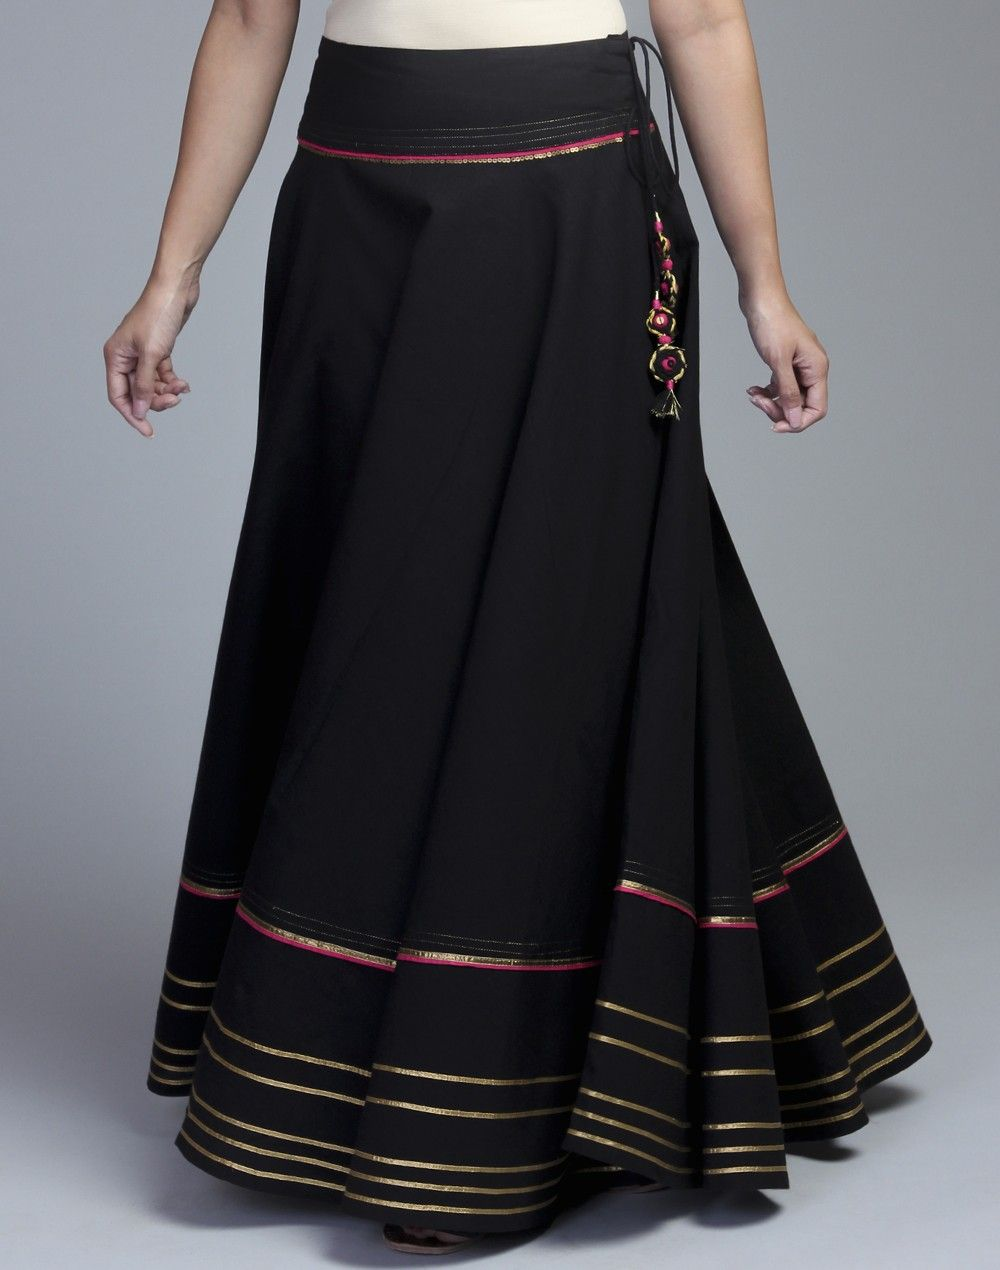 Cotton Gota Trim Long Skirt | long skrits | Pinterest | Skirts ...